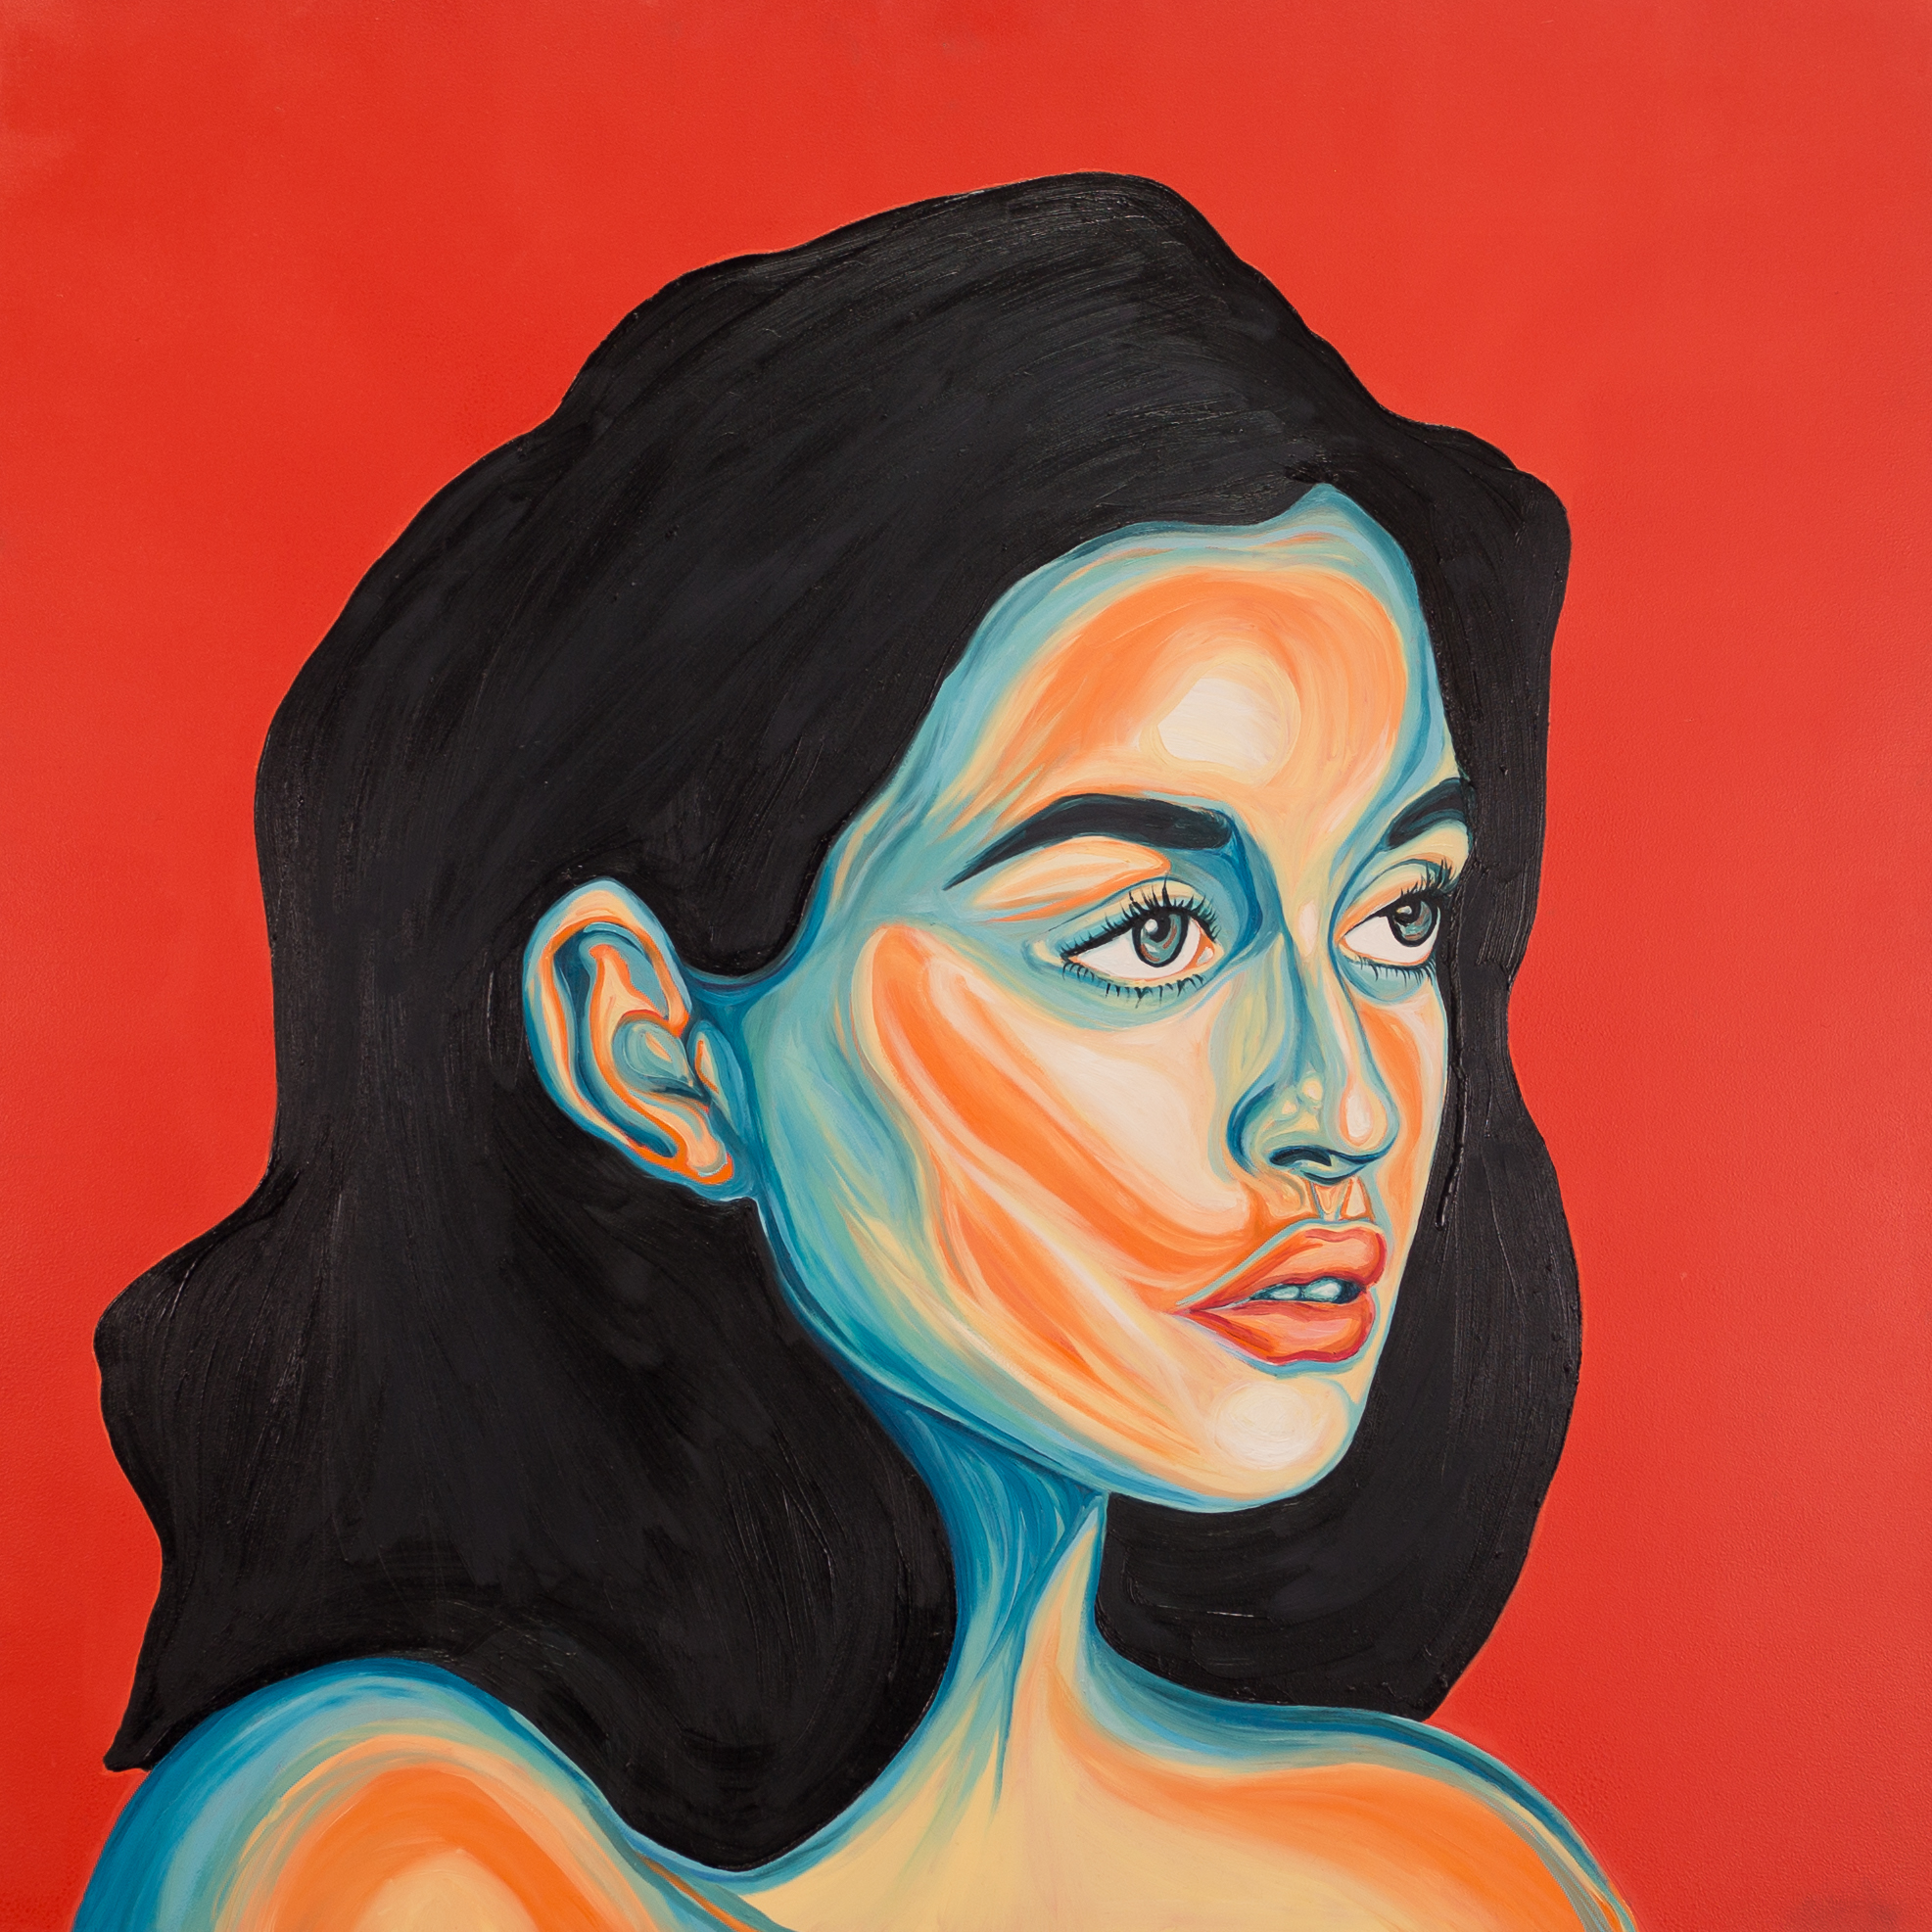 You say red, I see orange    2018  Oil and acrylic on canvas  30 x 30 inches